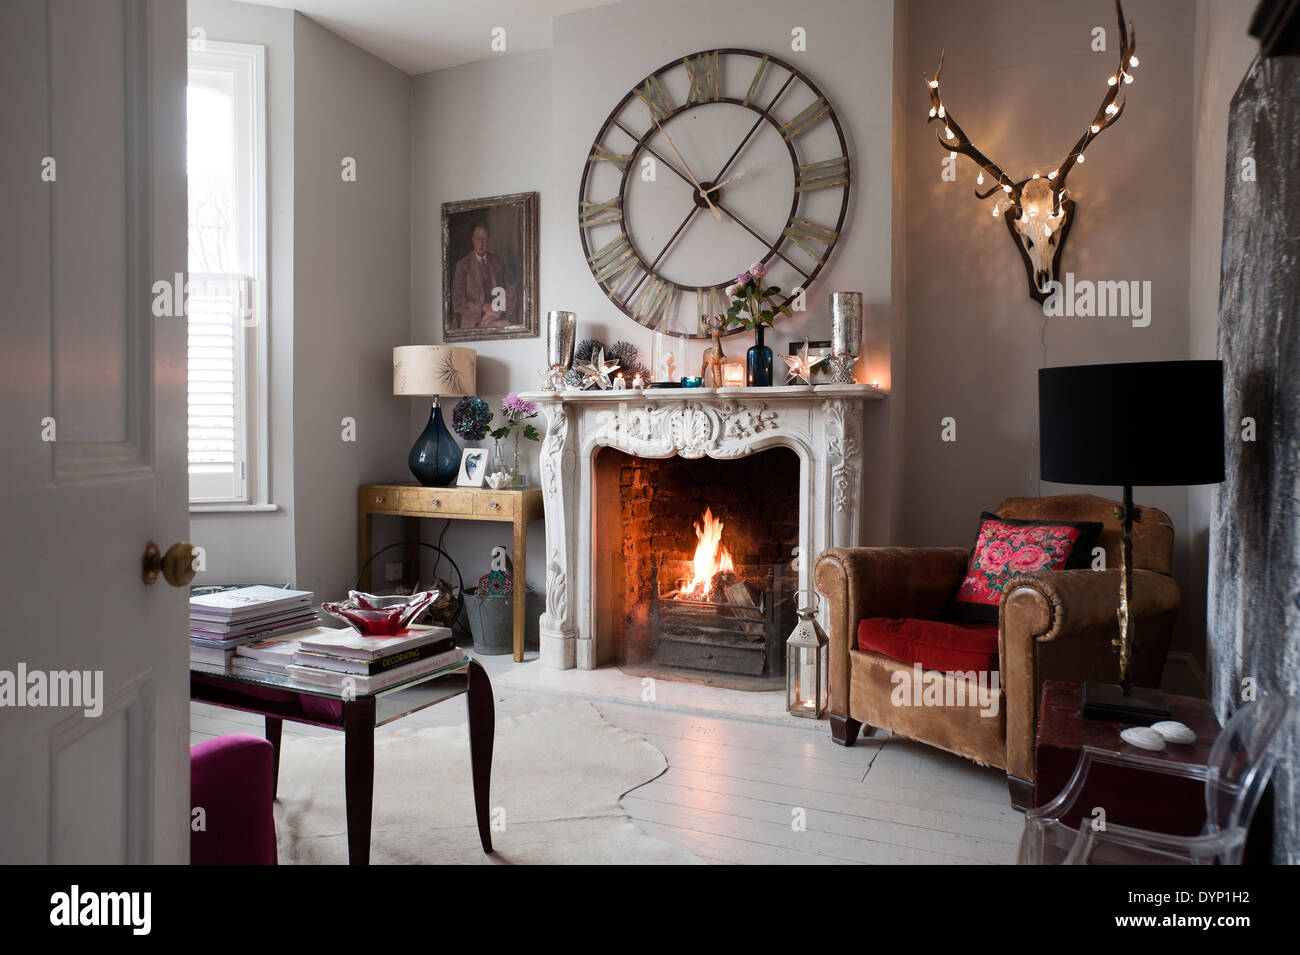 Royalty Free Image: 68711022 - Alamy